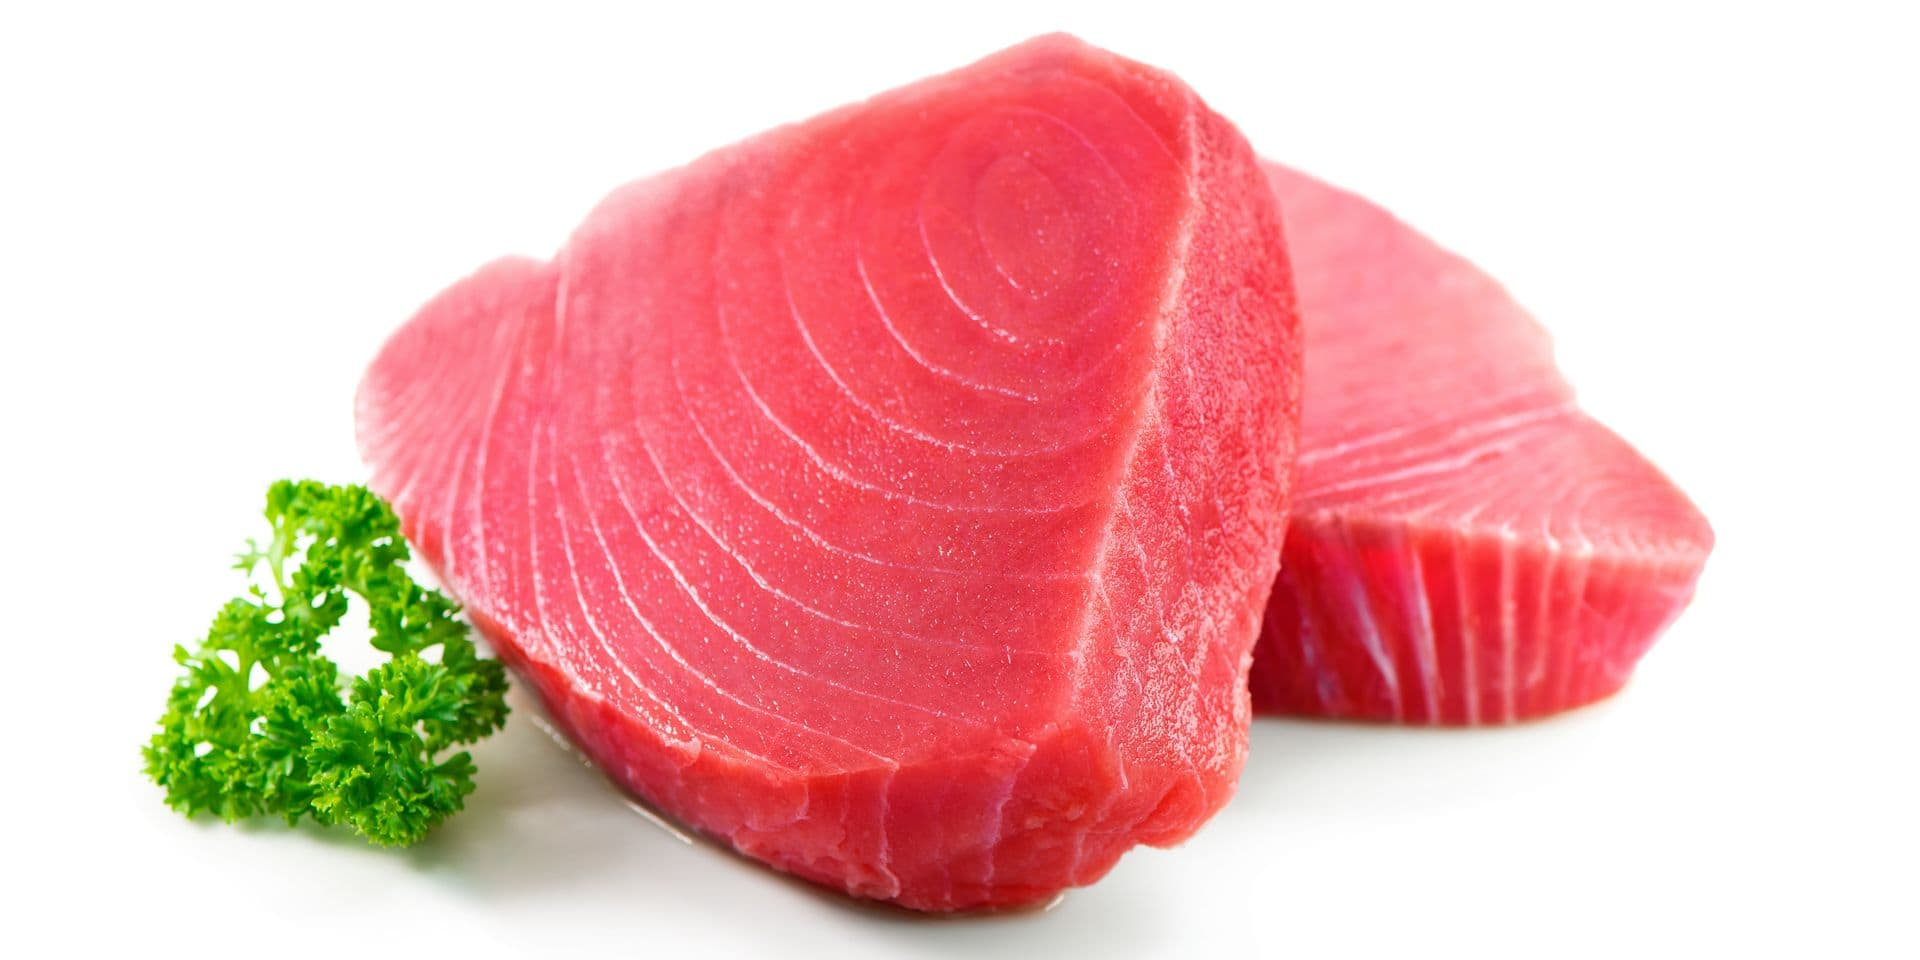 Fresh,Tuna,Fish,Fillet,Steaks,Garnished,With,Parsley,Isolated,On